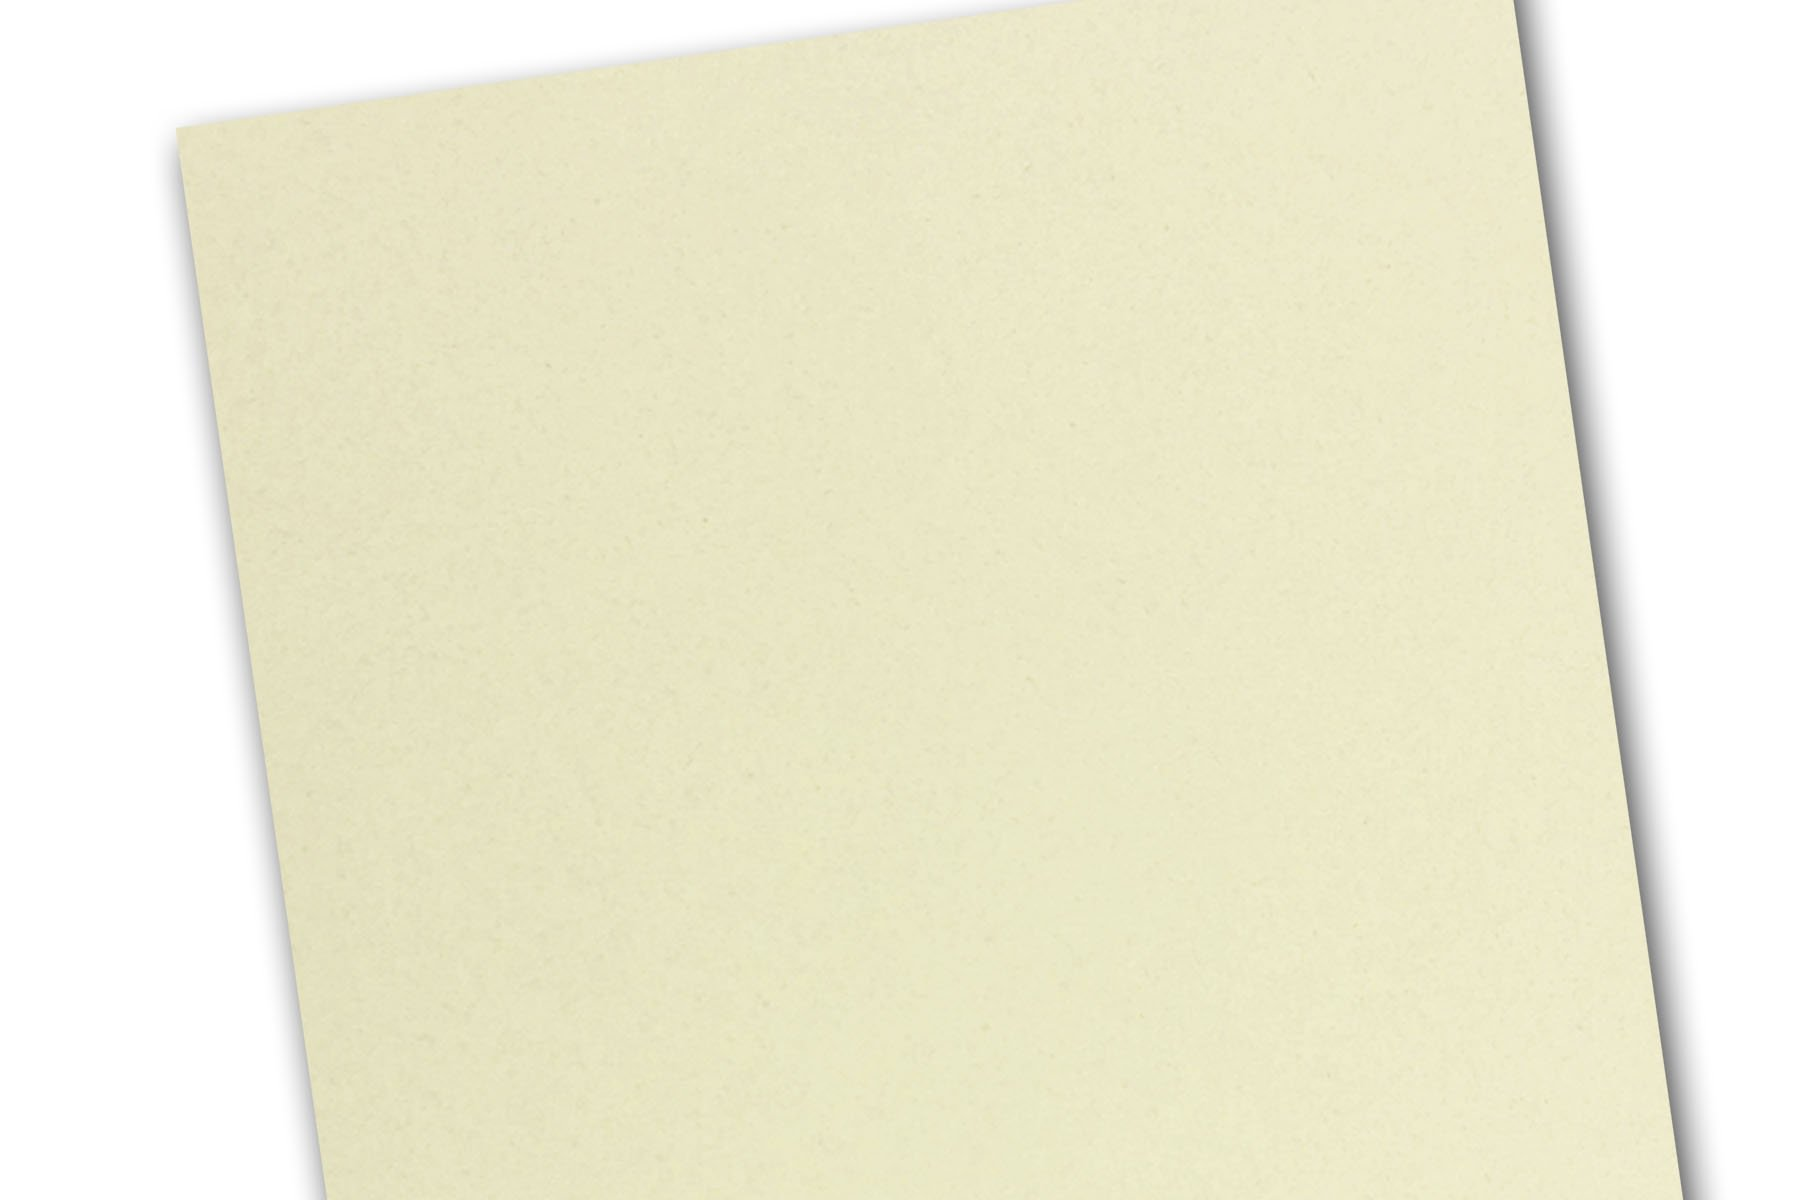 Royal Fibers 8.5'' x 5.5'' inch Half Letter 80# Cover Card Stock - 216 gsm 30% Recycled (250 Pack, Cream) by CutCardStock